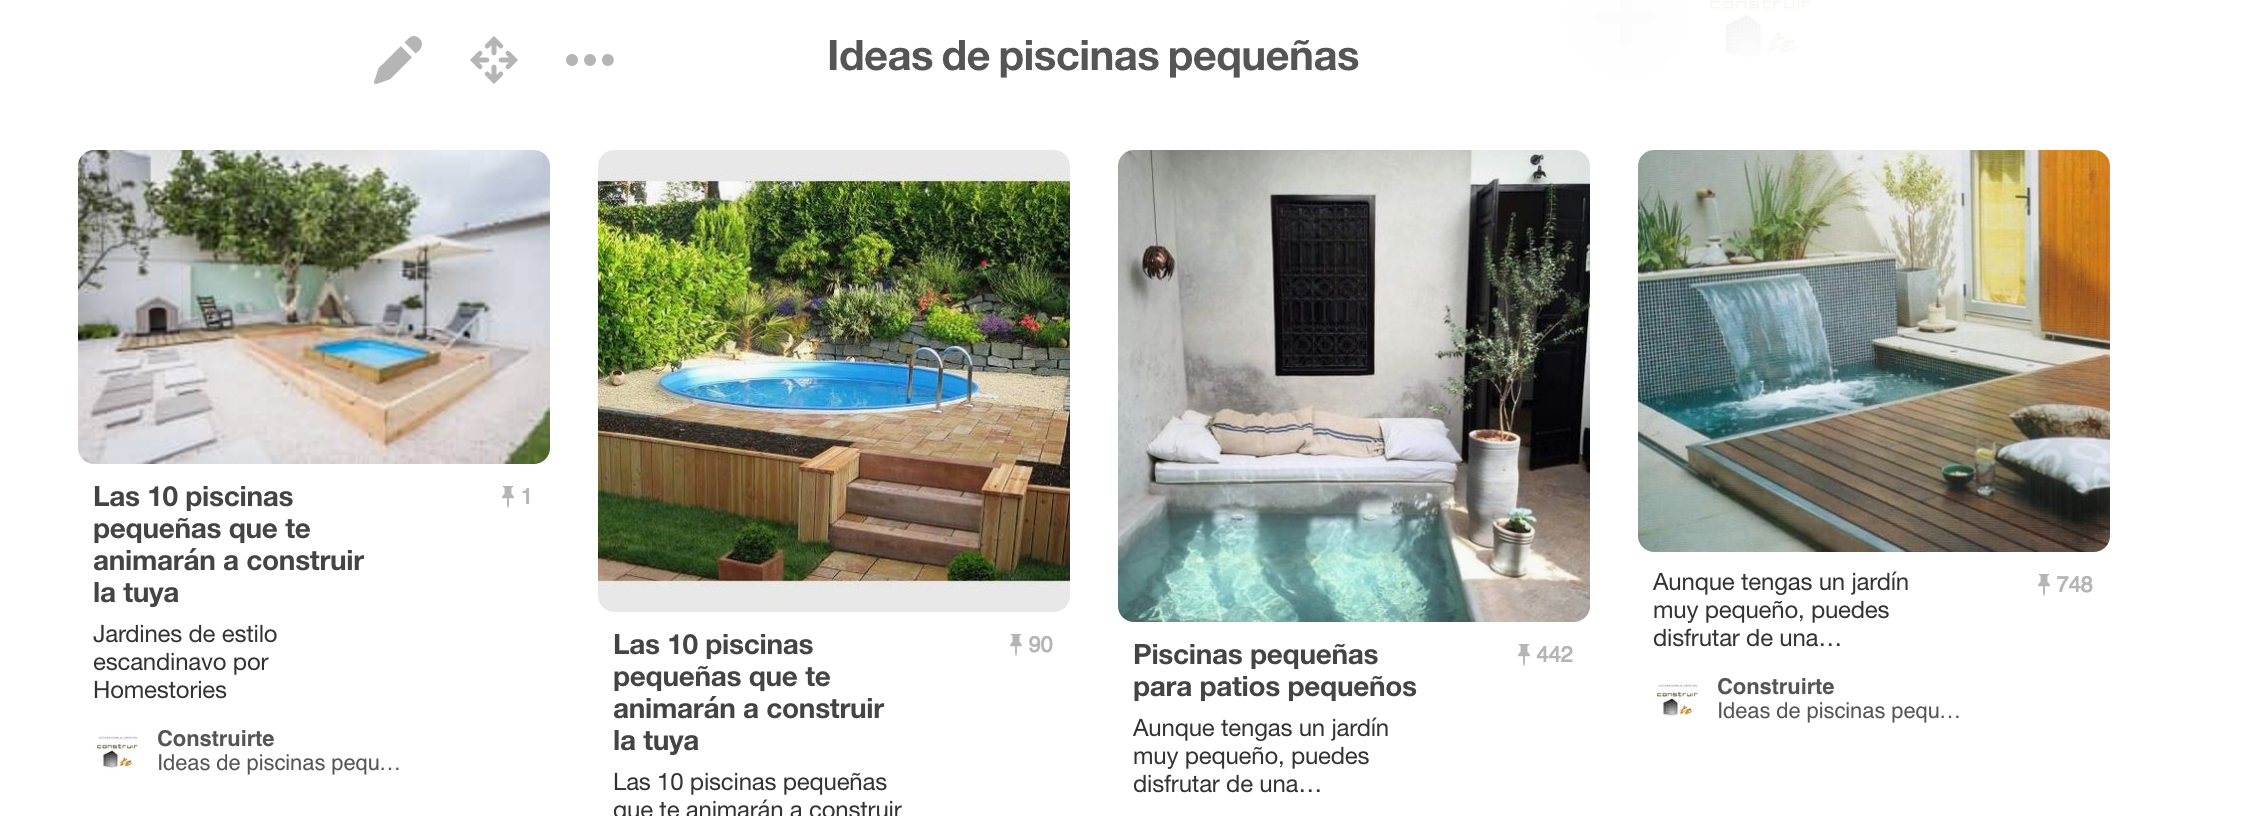 Grandes Ideas De Piscinas Peque As Edificaciones Y Reformas  ~ Piscinas Para Patios Pequeños Ideas